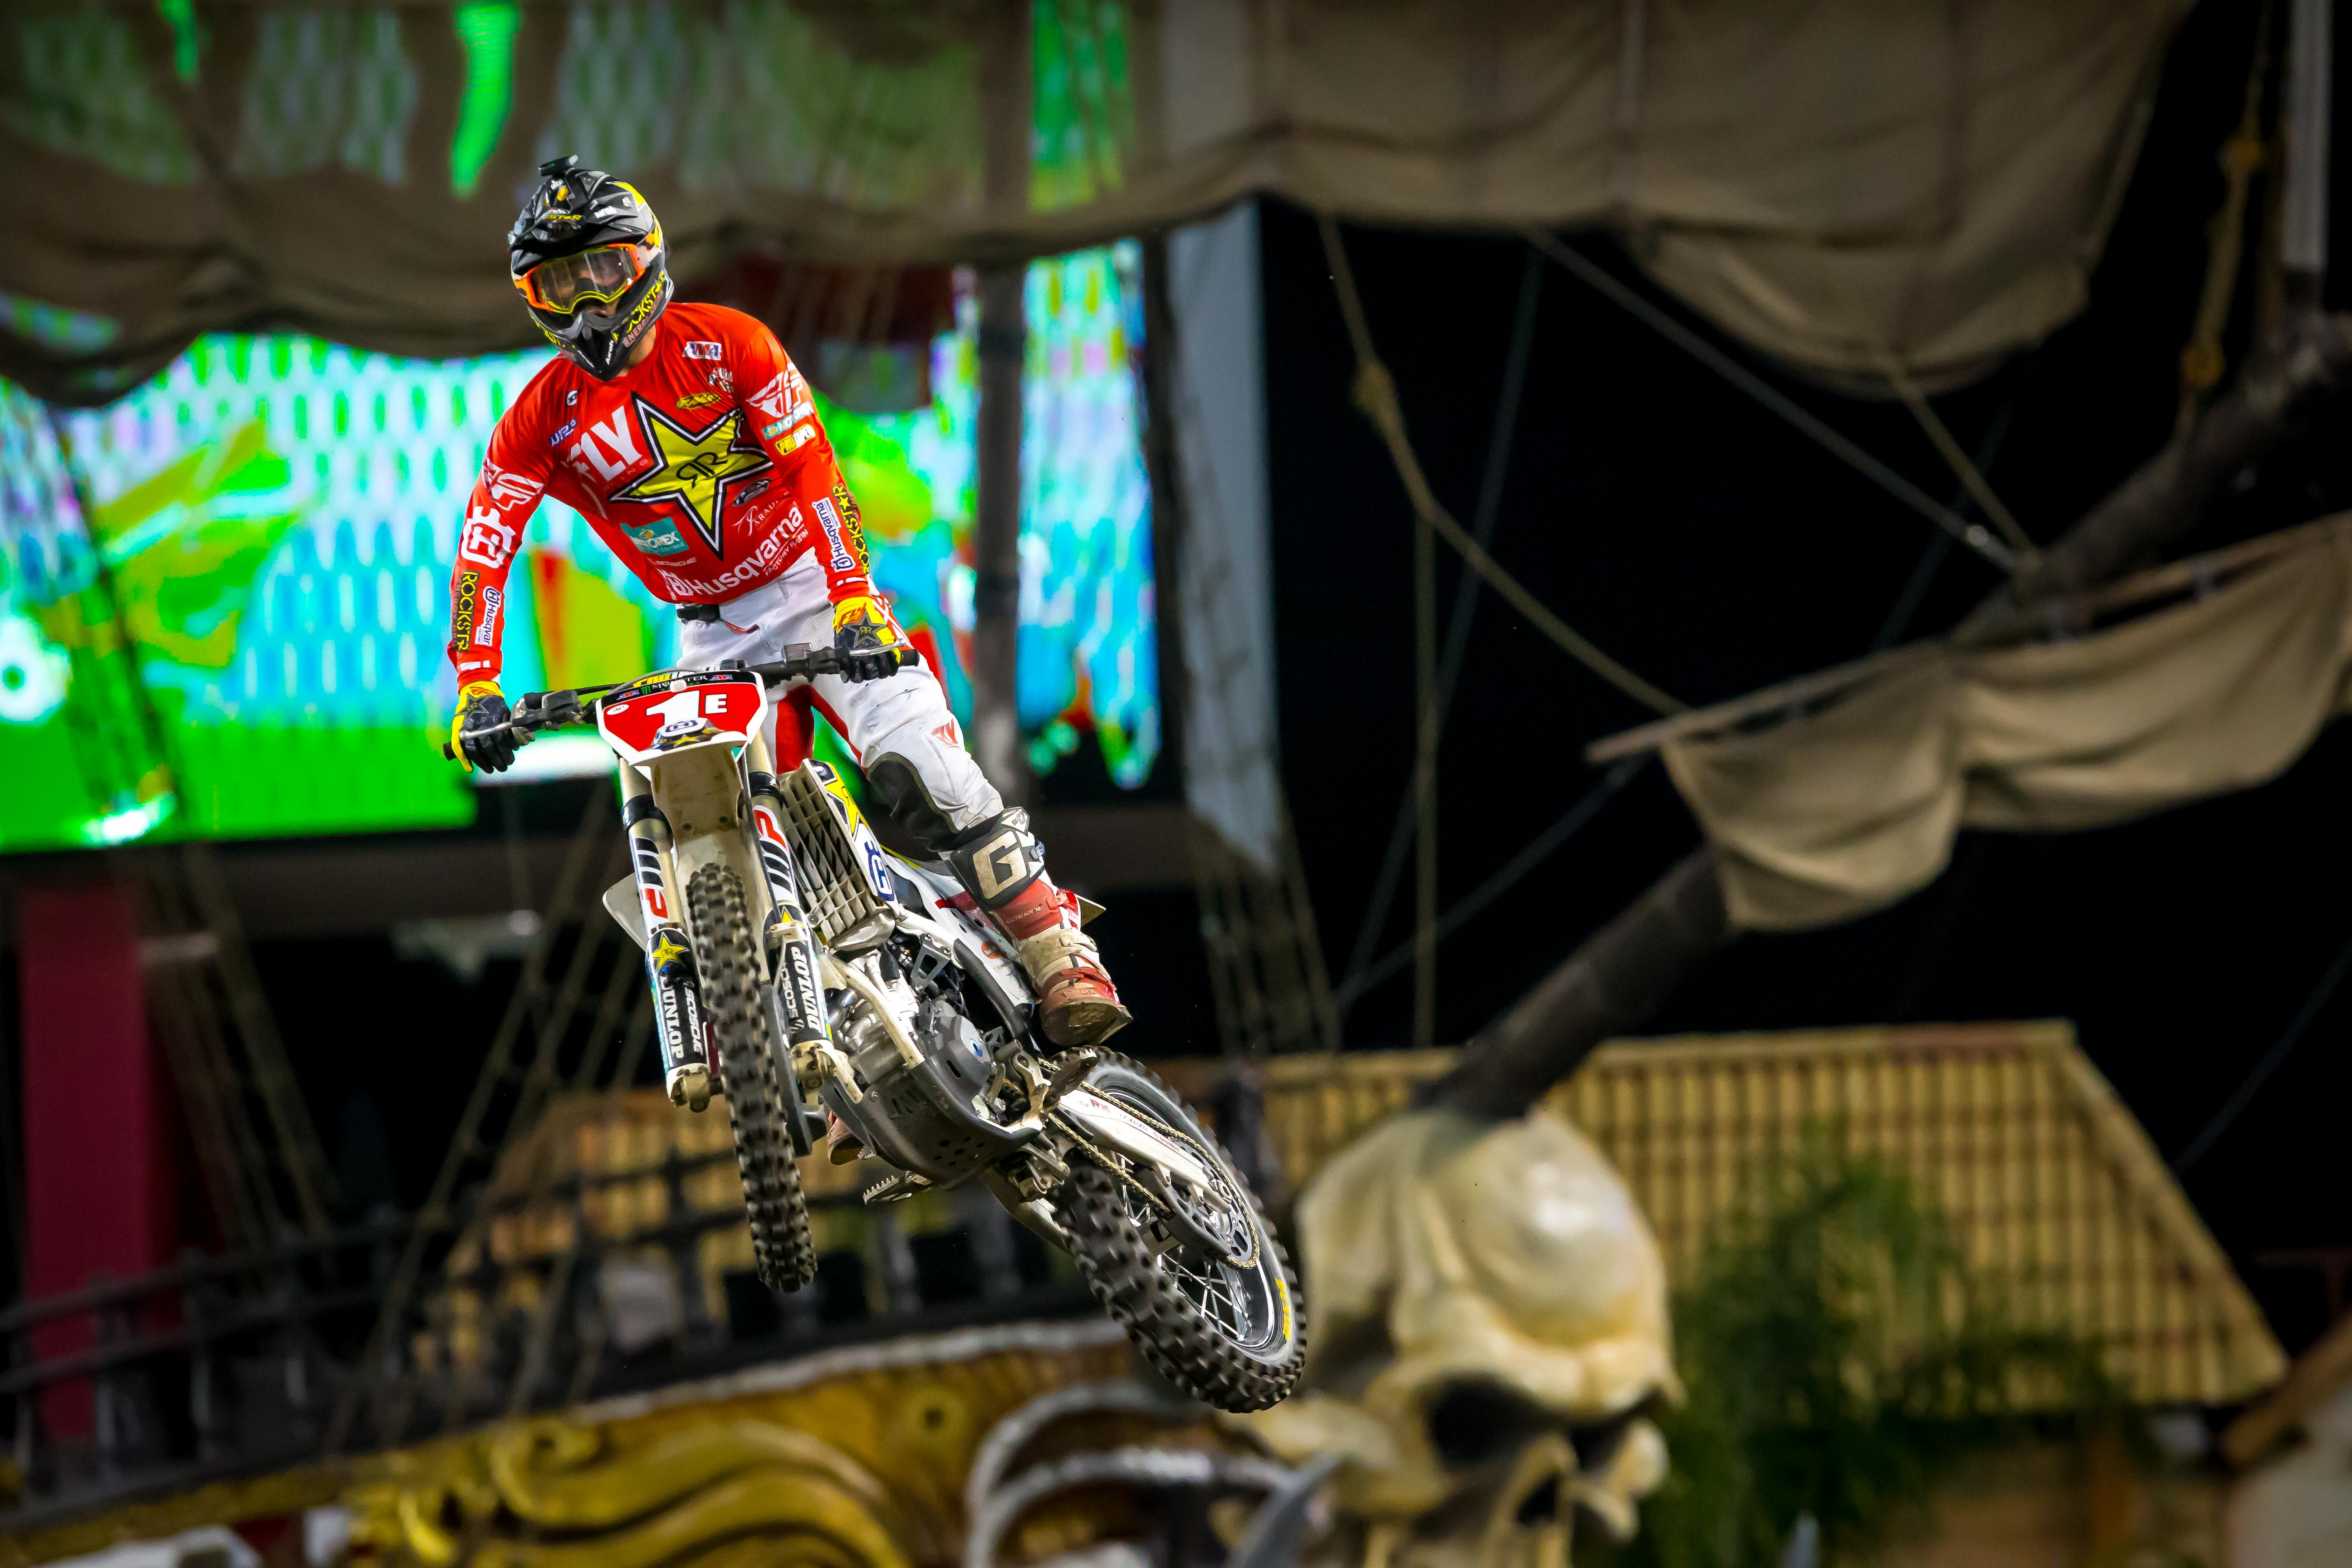 Osborne is the current 250SX East points leader